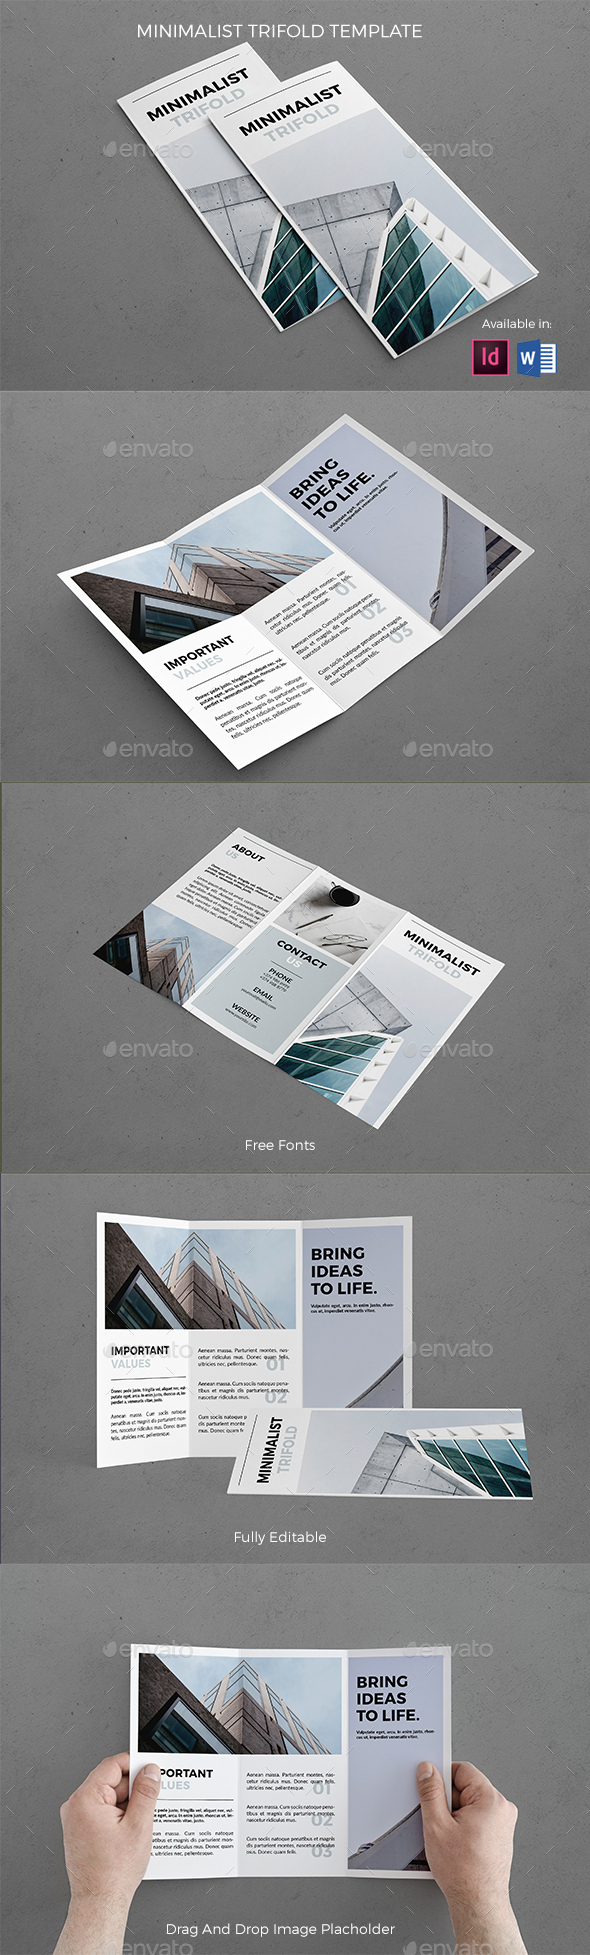 Minimalist Trifold Template - Brochures Print Templates